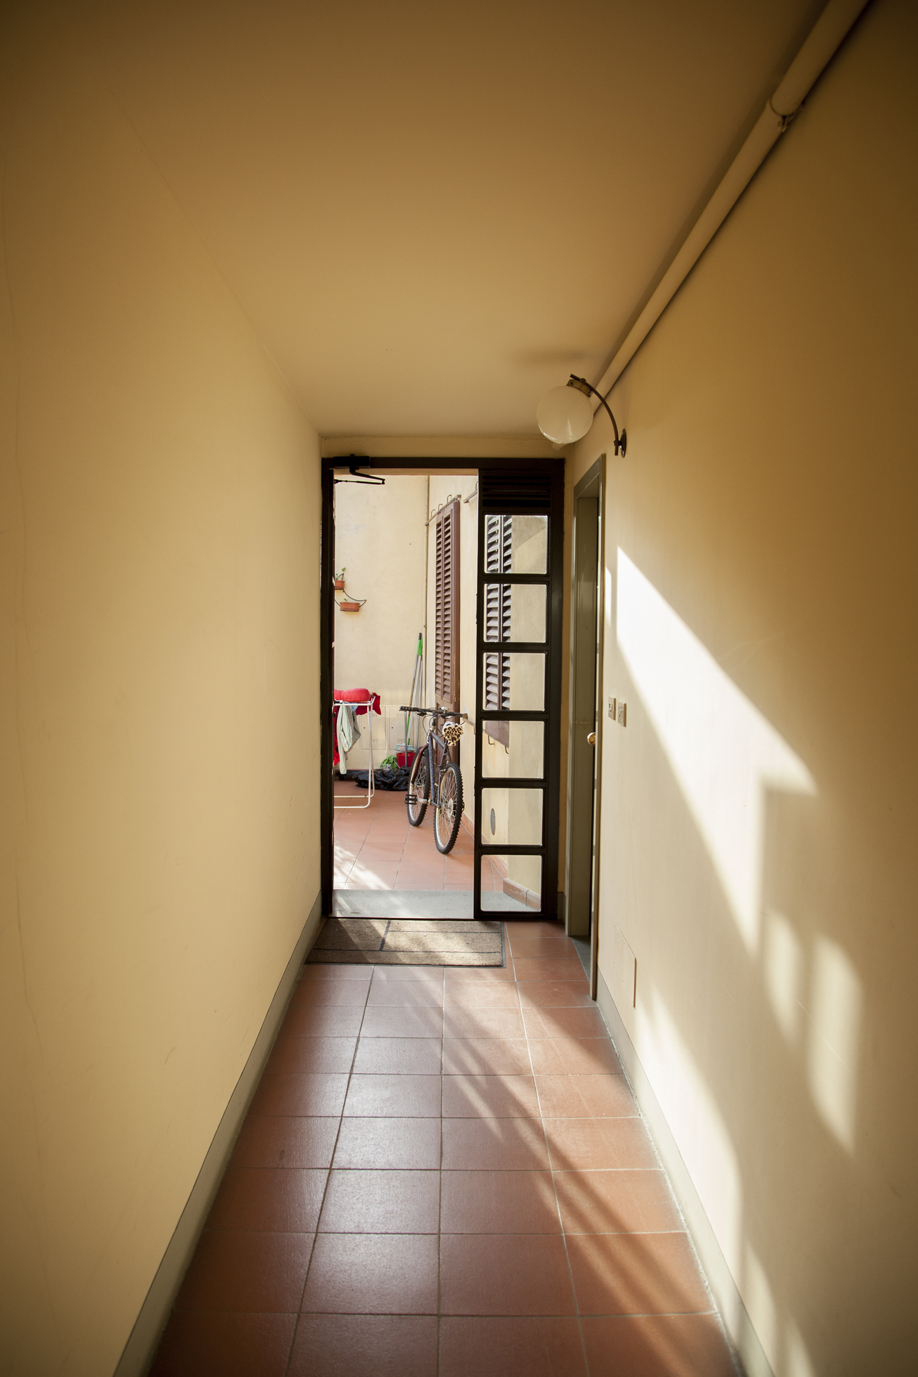 Inside AirBnb apartment in Florence, Italy.